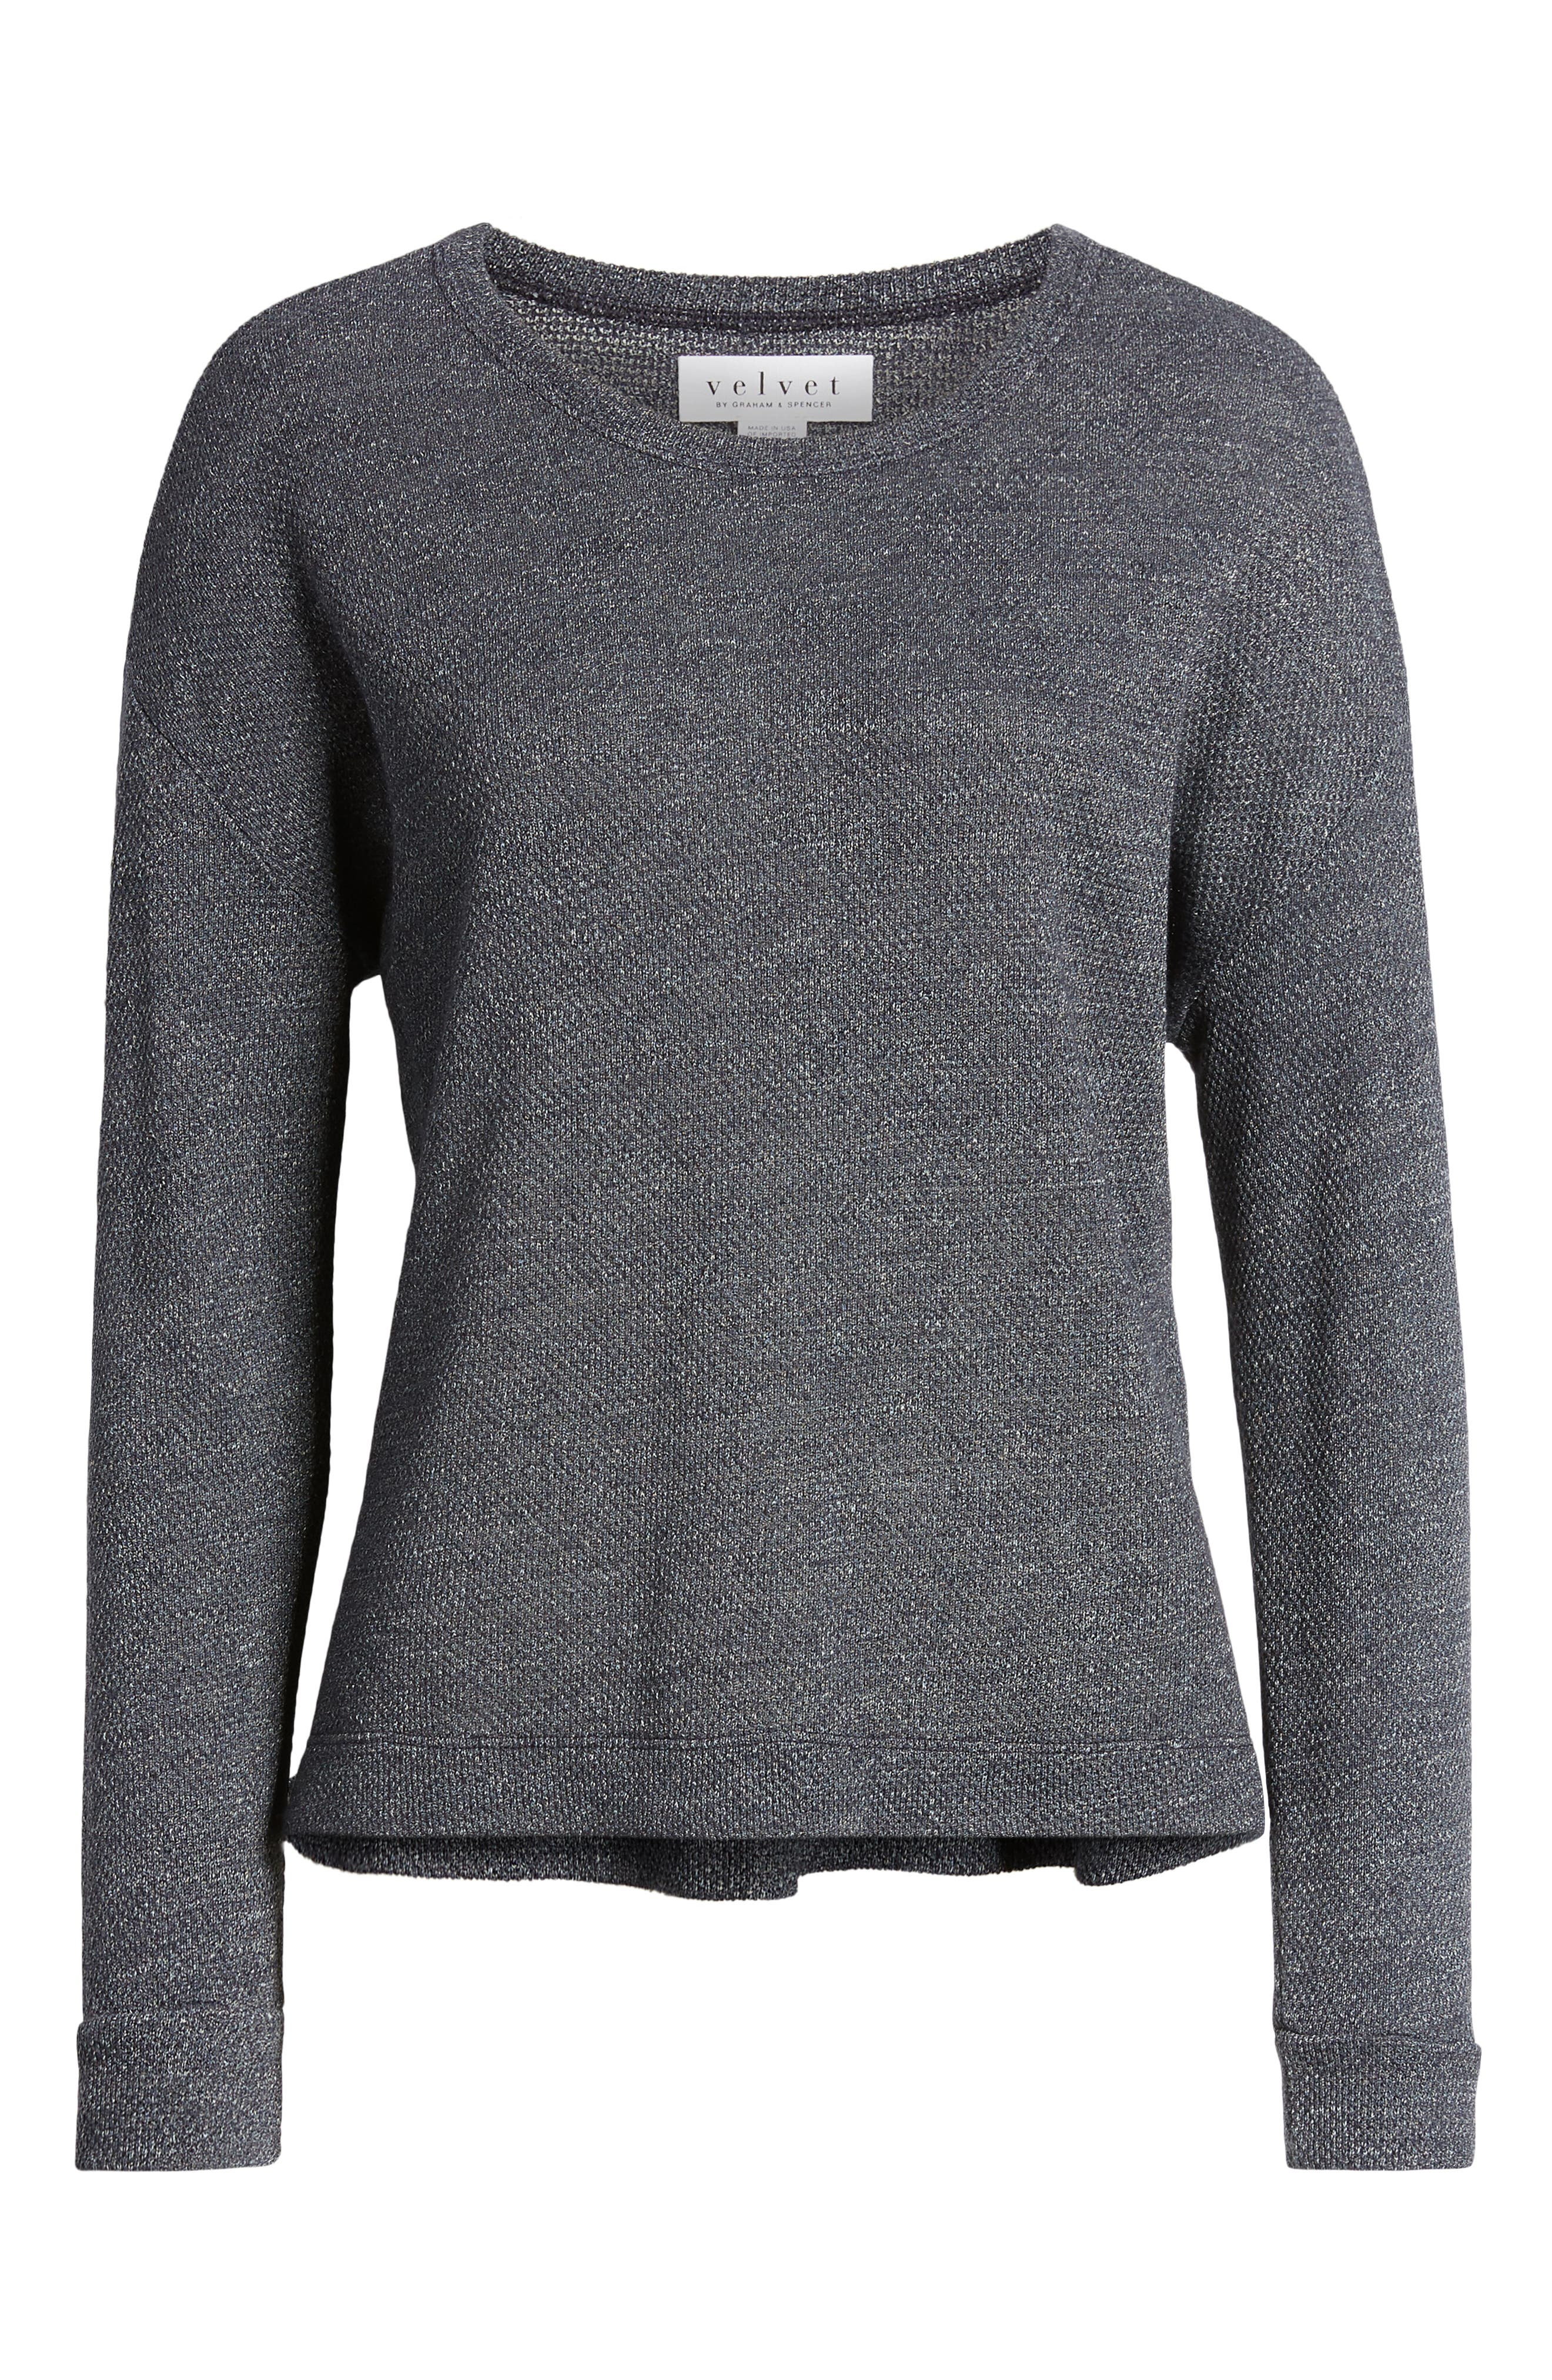 Thermal Pullover,                             Alternate thumbnail 6, color,                             CADET